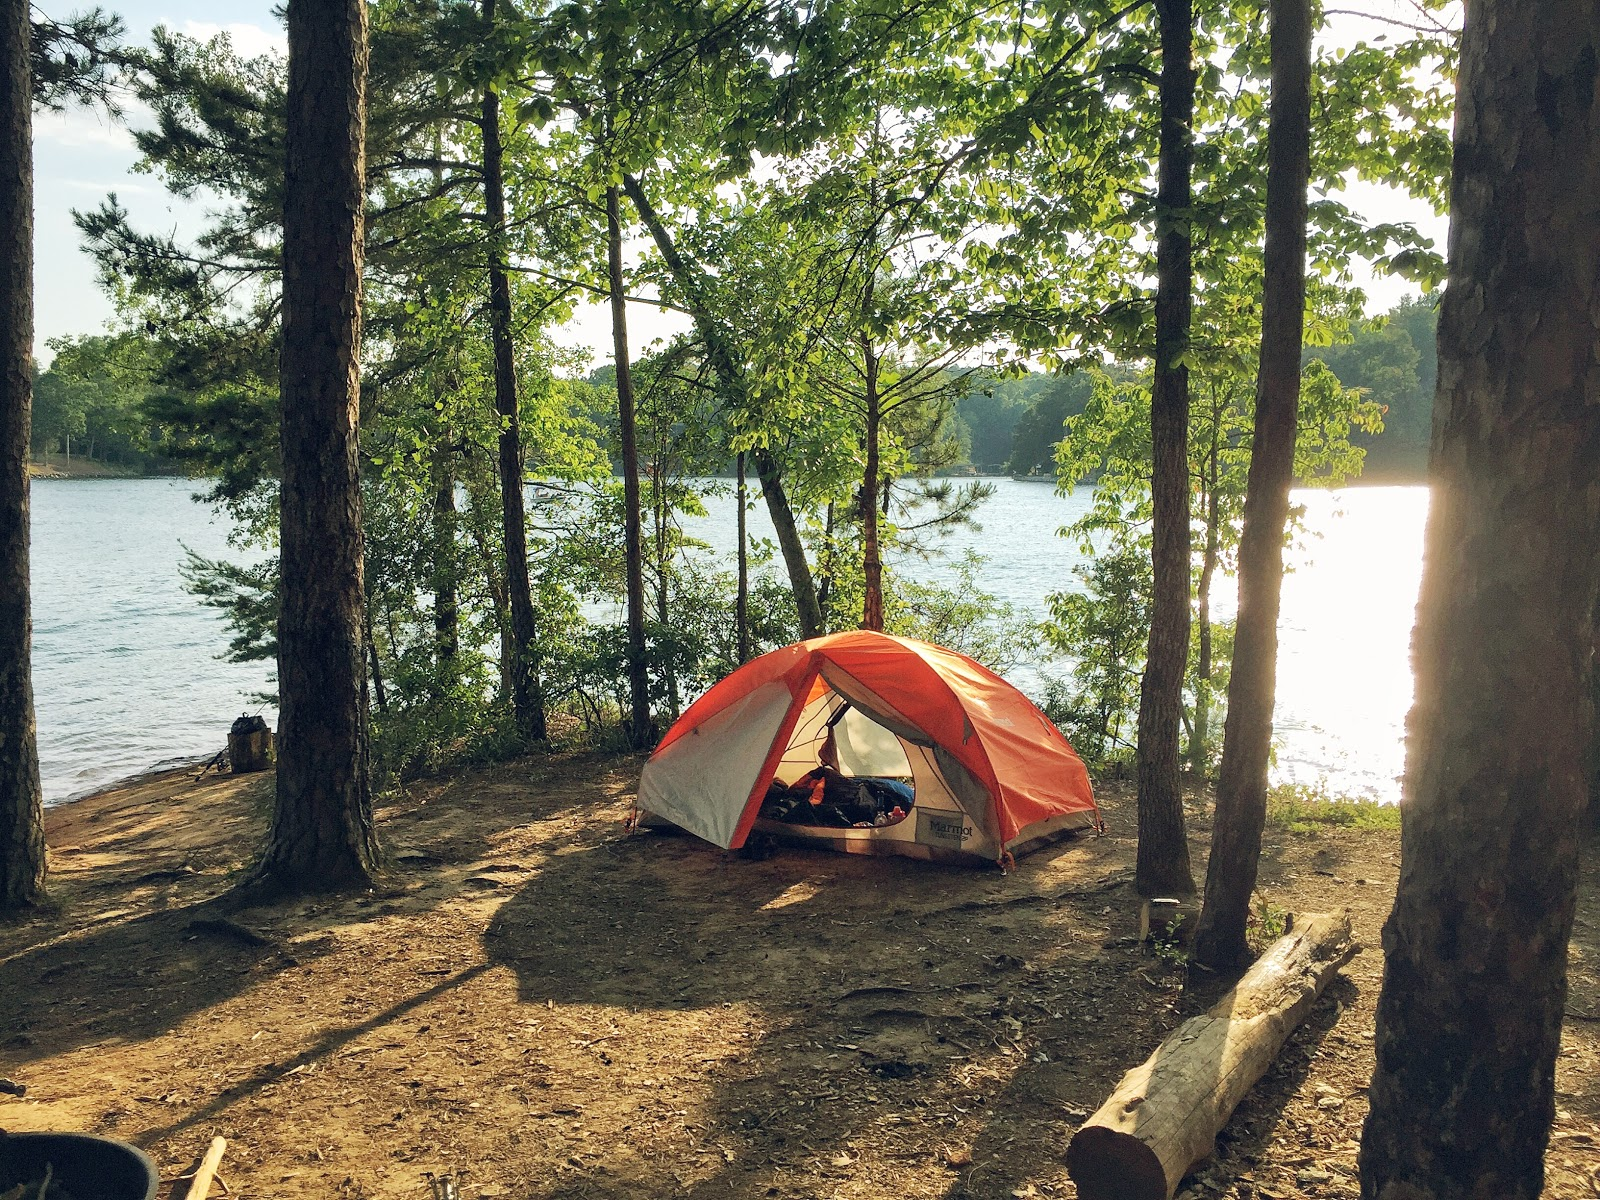 camping, lake keowee, toxaway, state park, south carolina, marmot, tent, trees, ts-3, ts-003